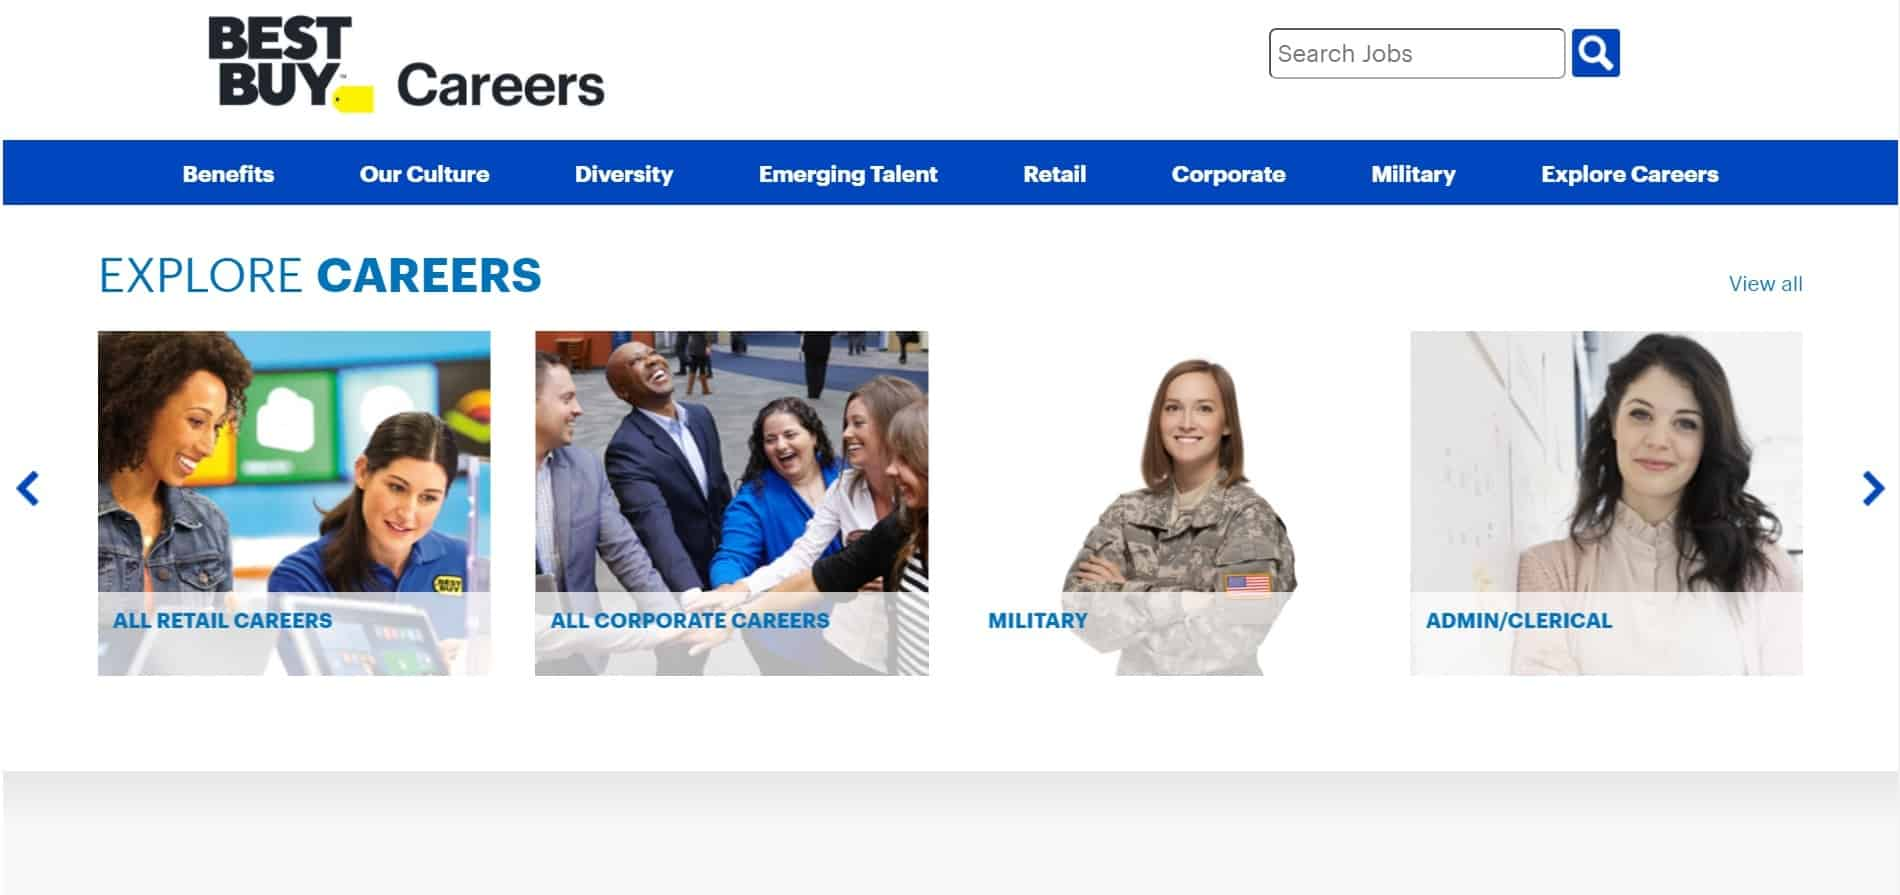 Before you submit your Best Buy application online, take a look at all the career areas to choose from.